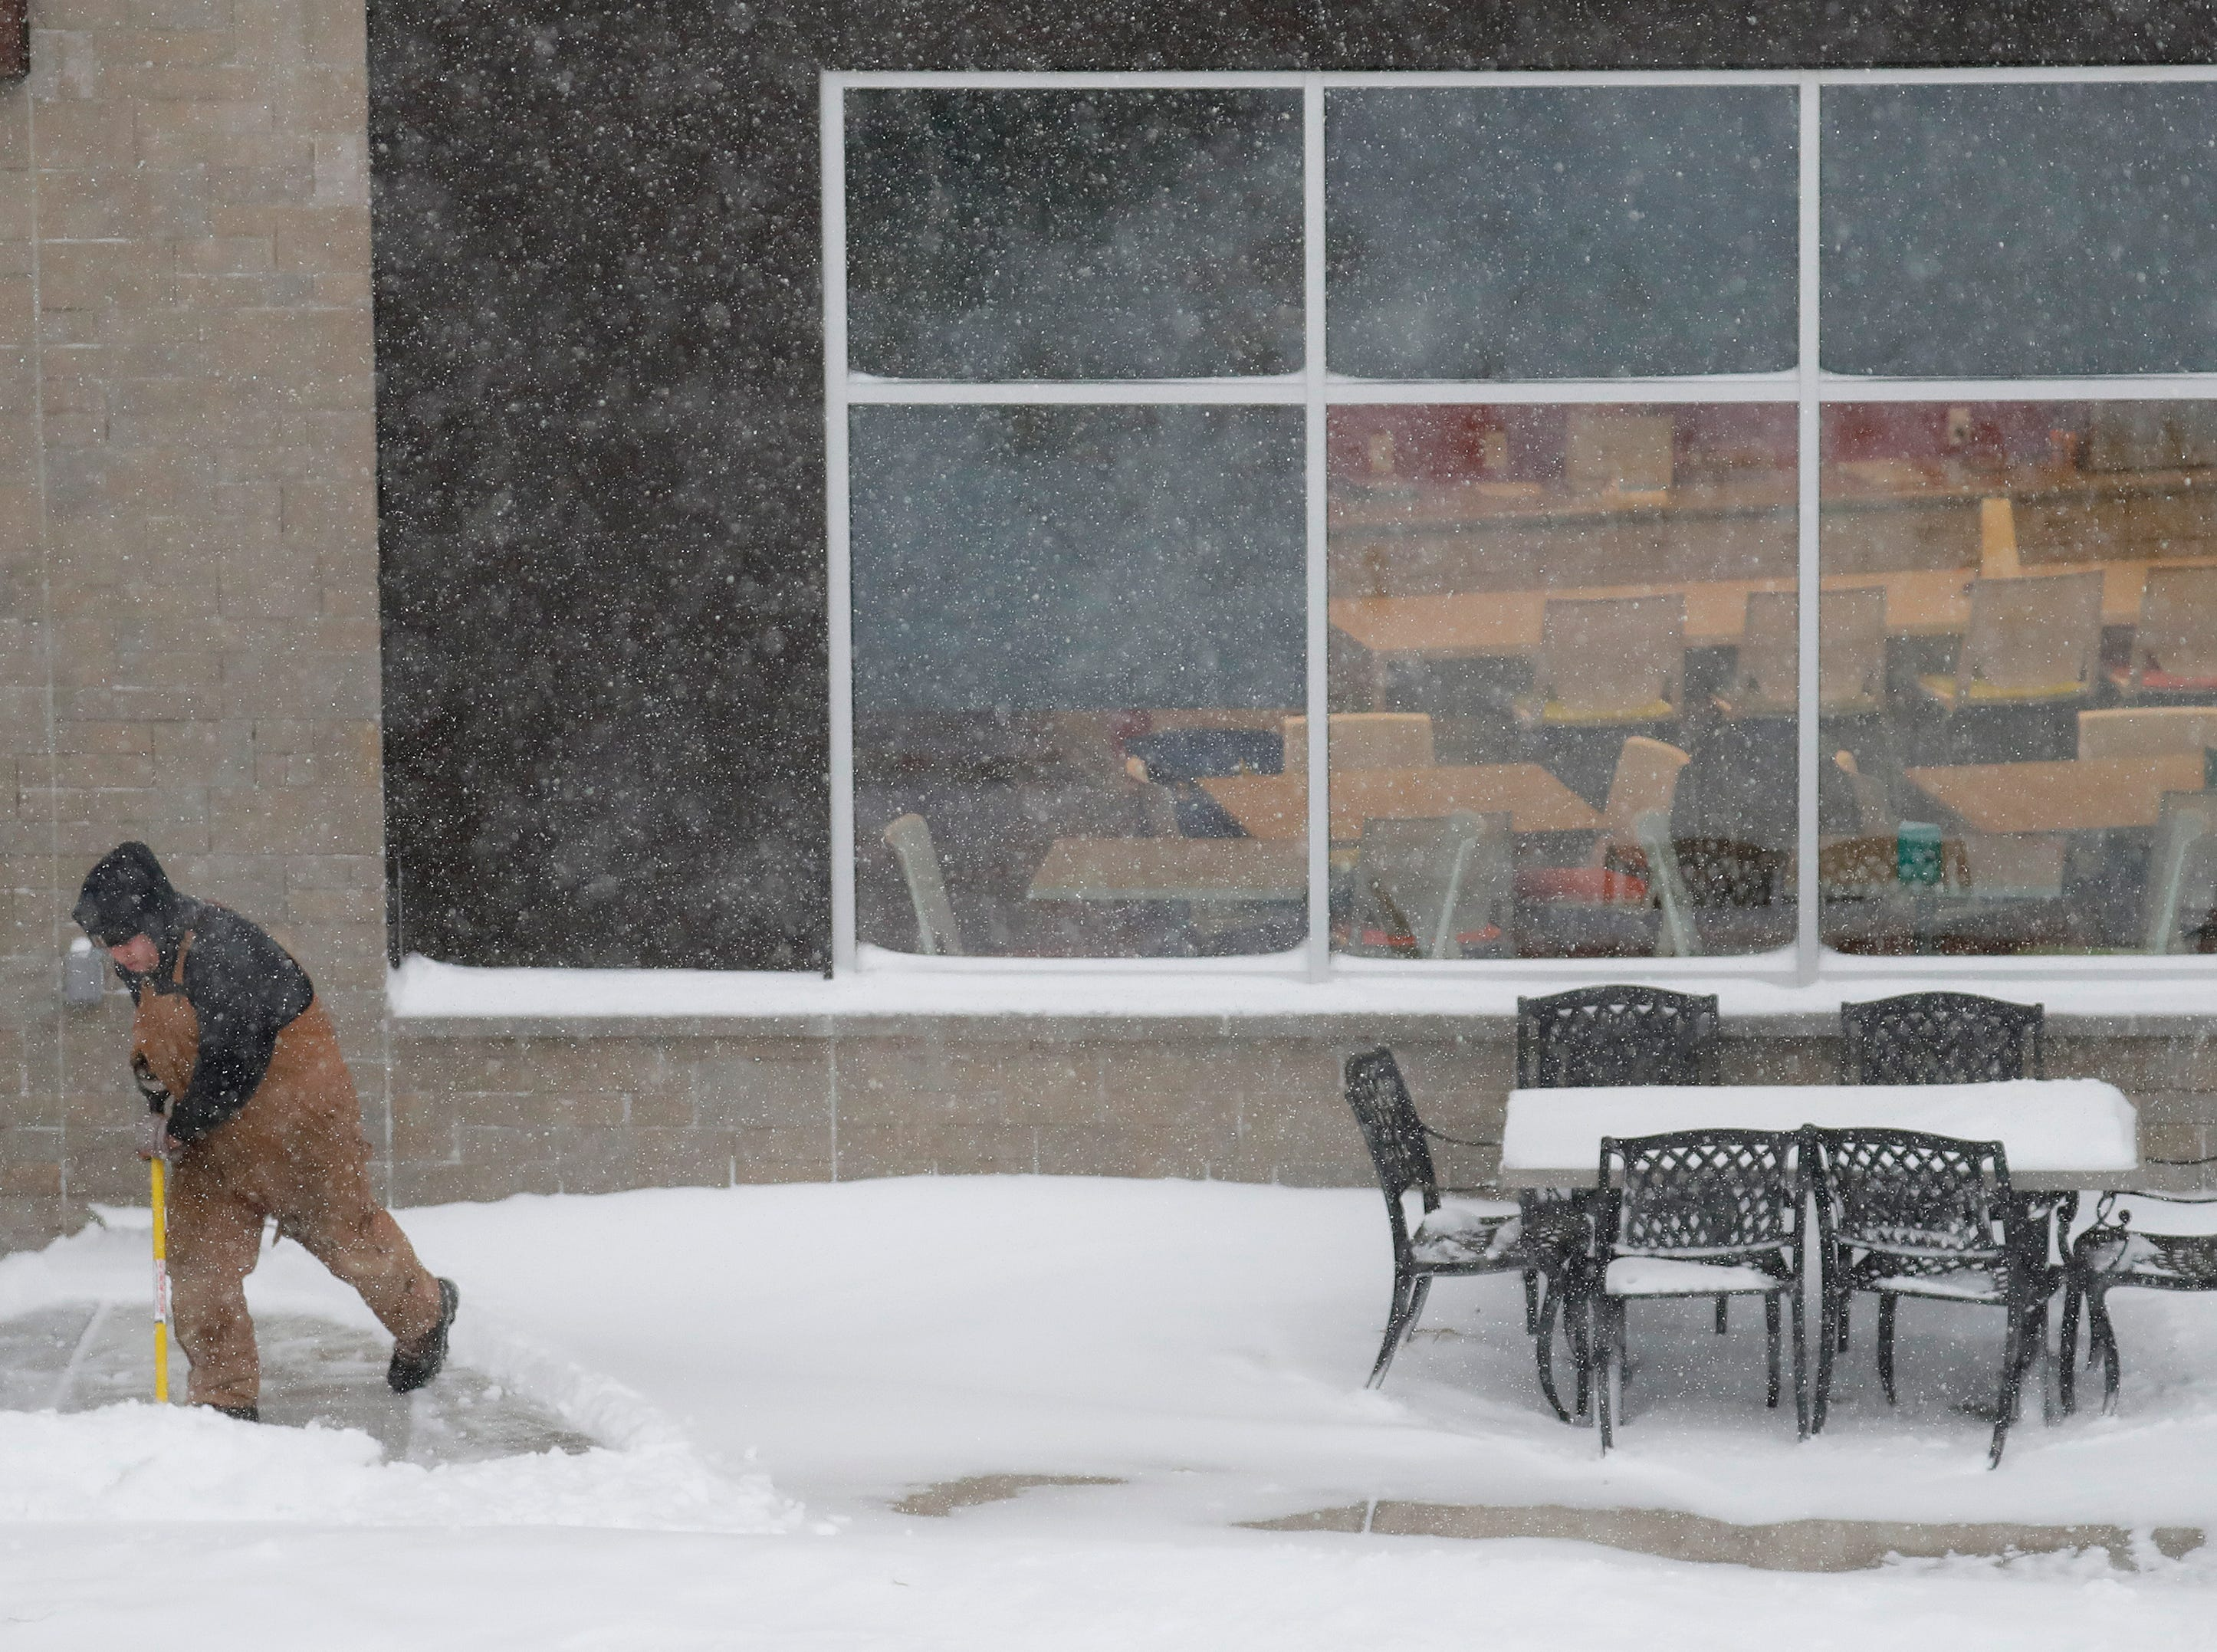 Taylor Vandermoss of Kaukauna shovels snow from a walkway at Thrivent Federal Credit Union during a snowstorm Monday, January 28, 2019, in Appleton, Wis. 